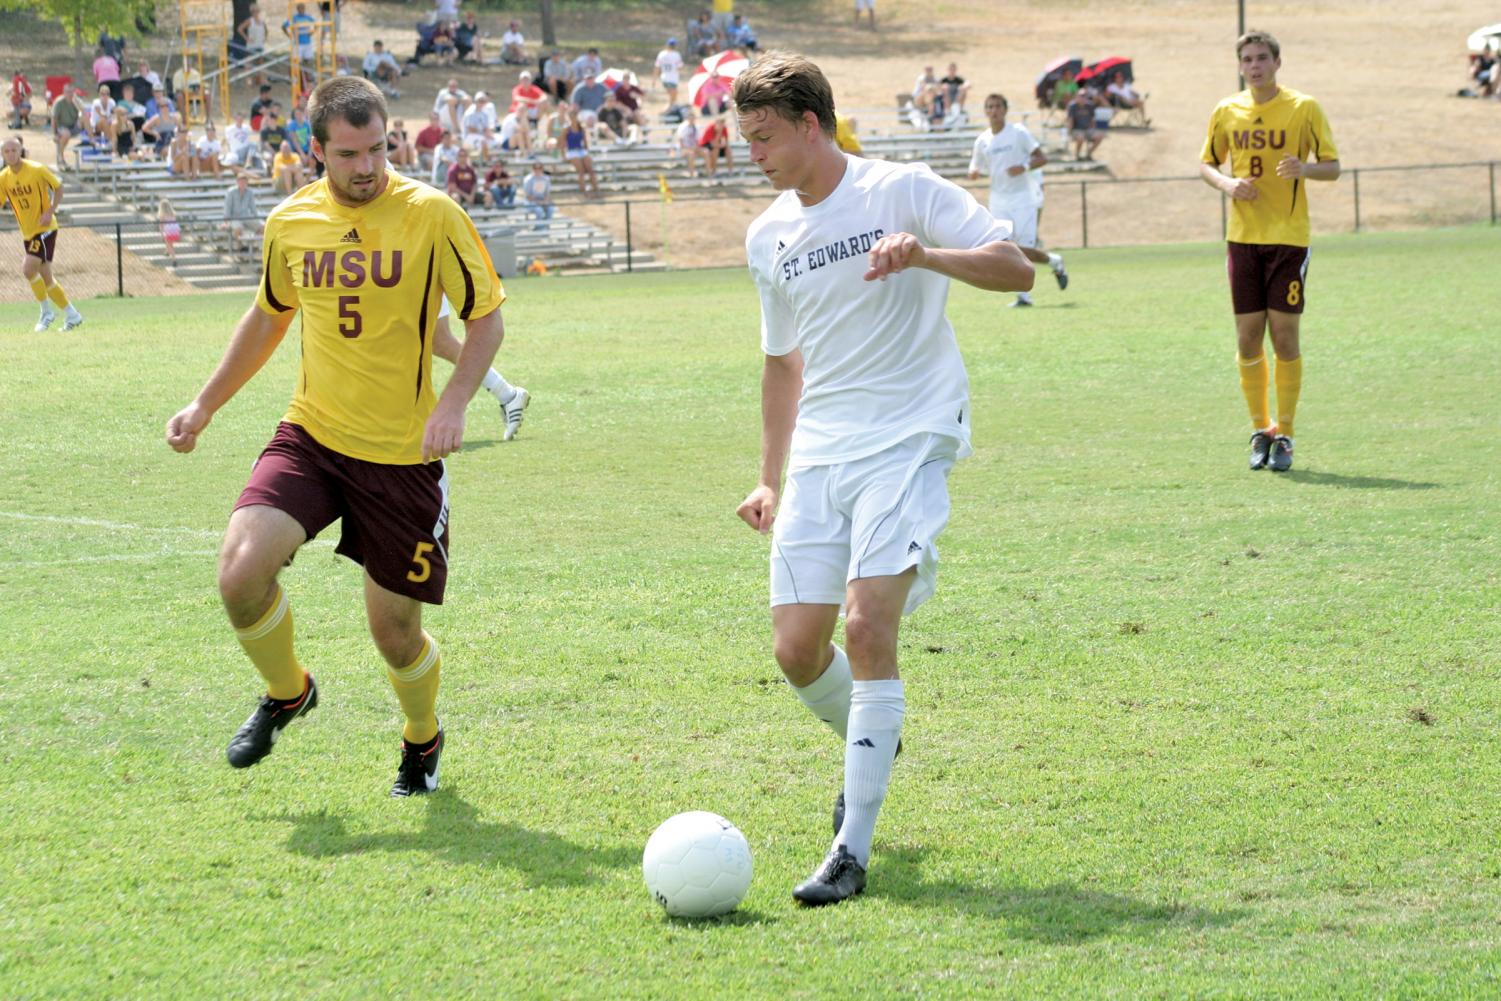 Andrew Fox was a member of the 2011-14 St. Edward's men's soccer team and has recently signed to the El Paso Locomotive.